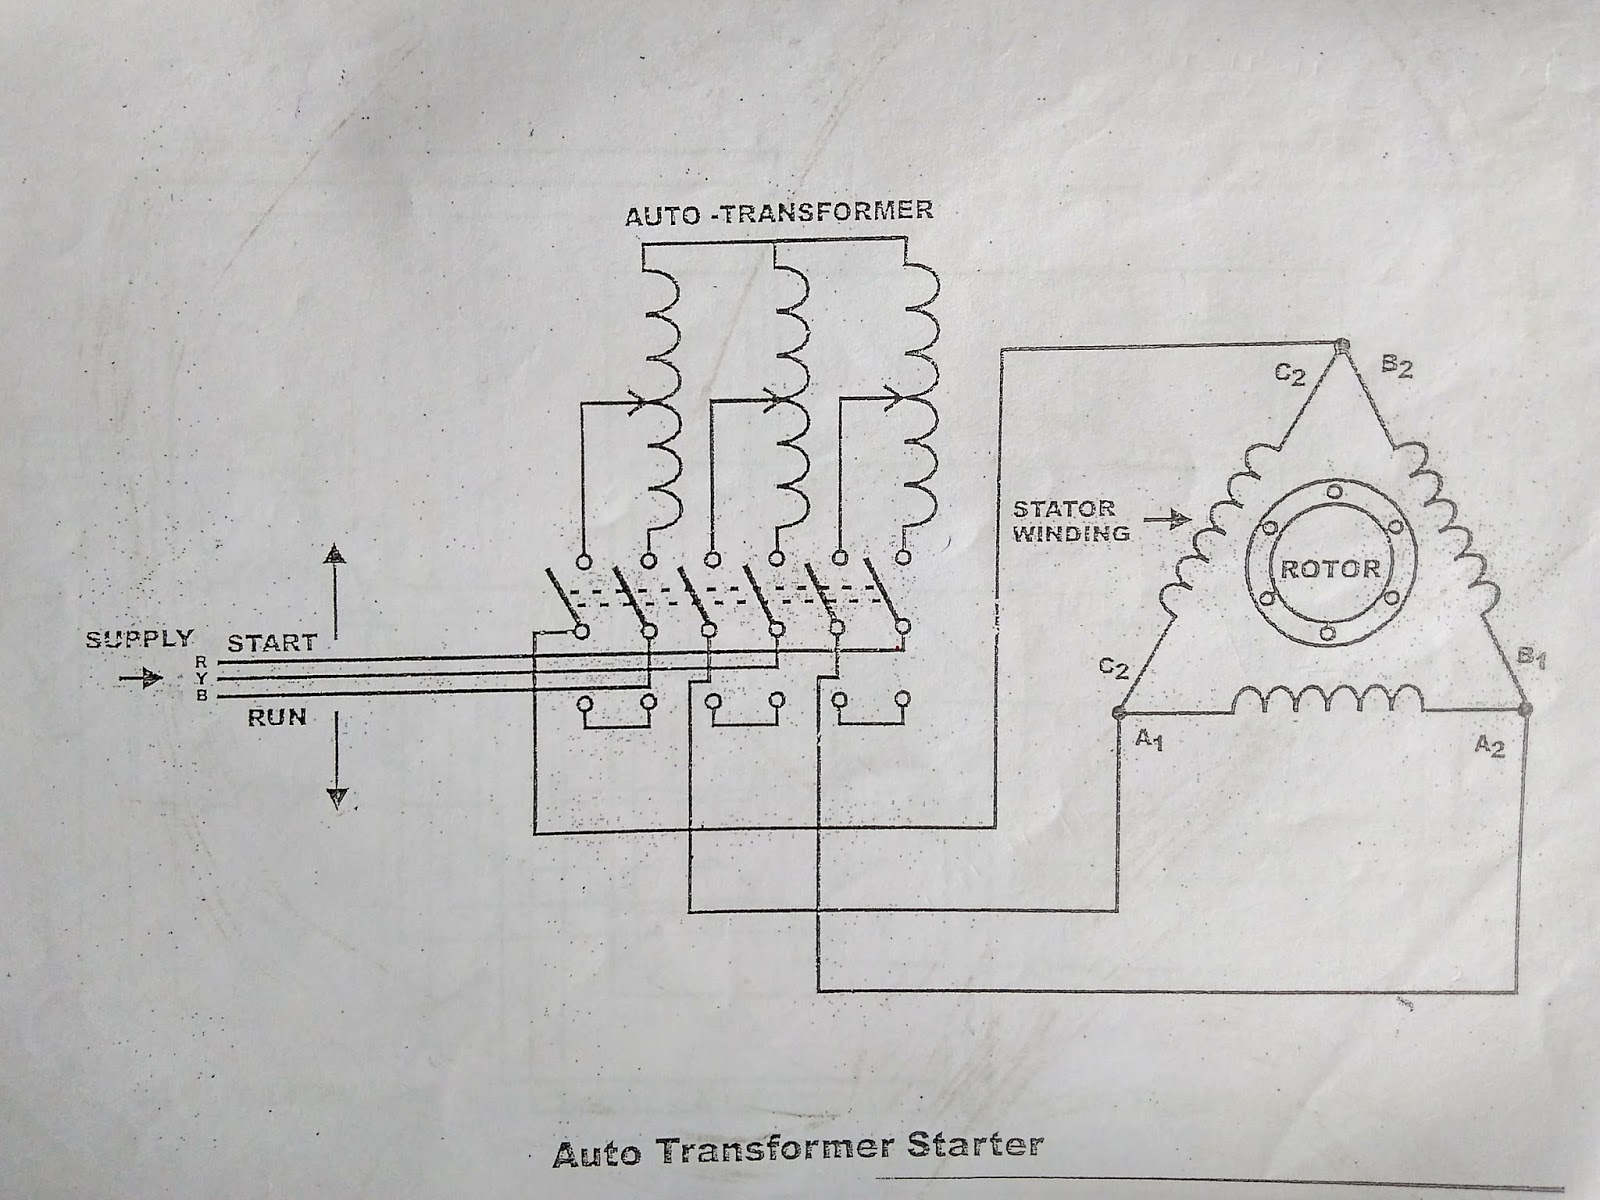 variac wiring diagram electric water for auto transformer starter library